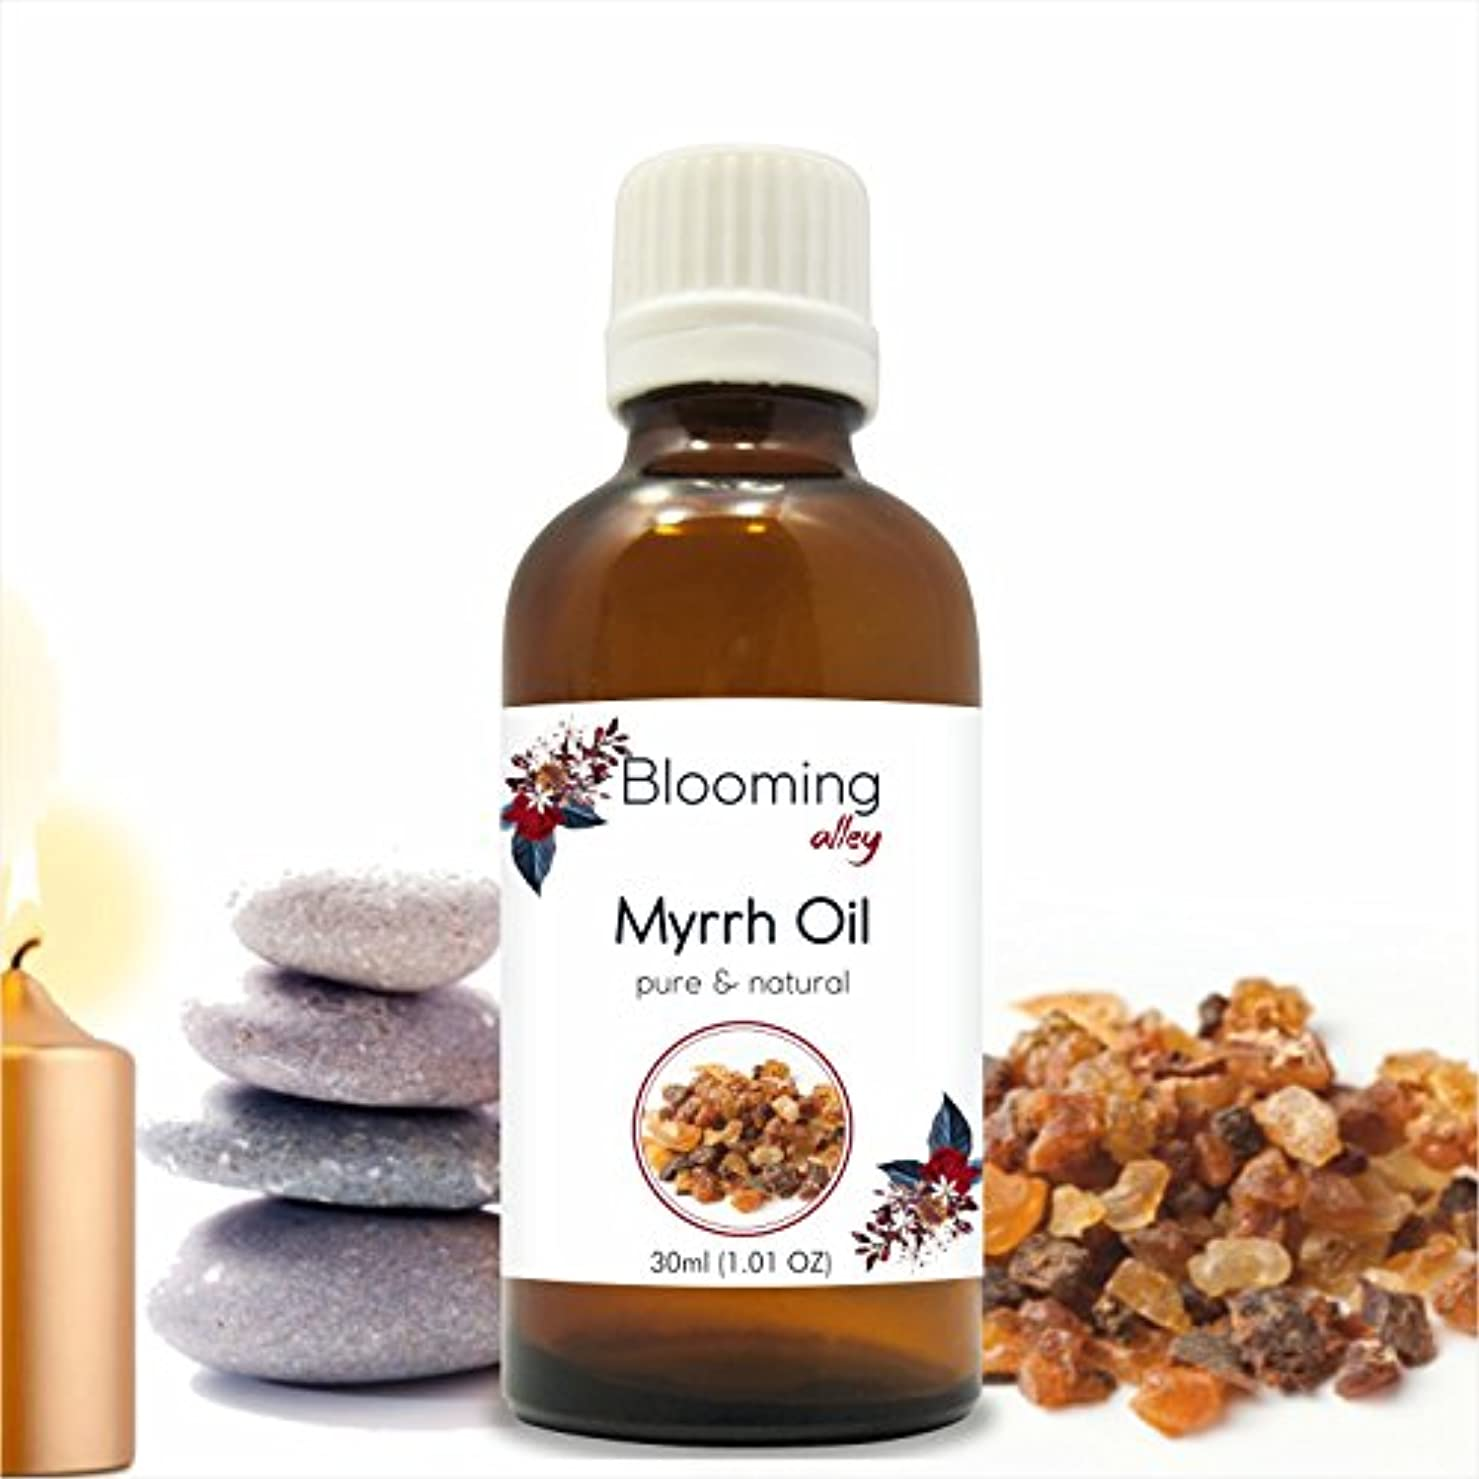 Myrrh Oil (Commiphora Myrrha) Essential Oil 30 ml or 1.0 Fl Oz by Blooming Alley